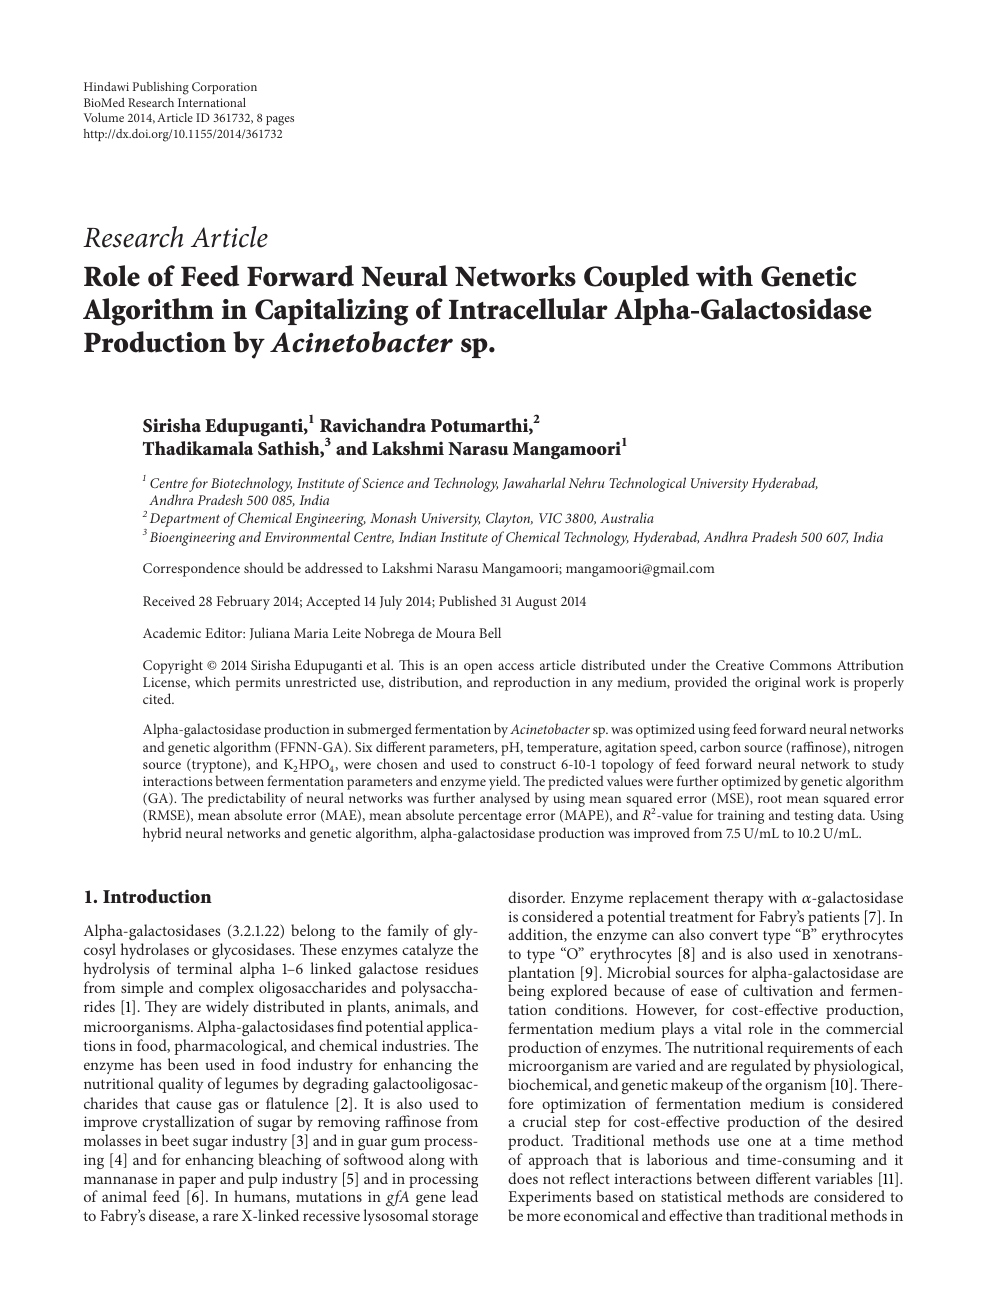 Role of Feed Forward Neural Networks Coupled with Genetic Algorithm